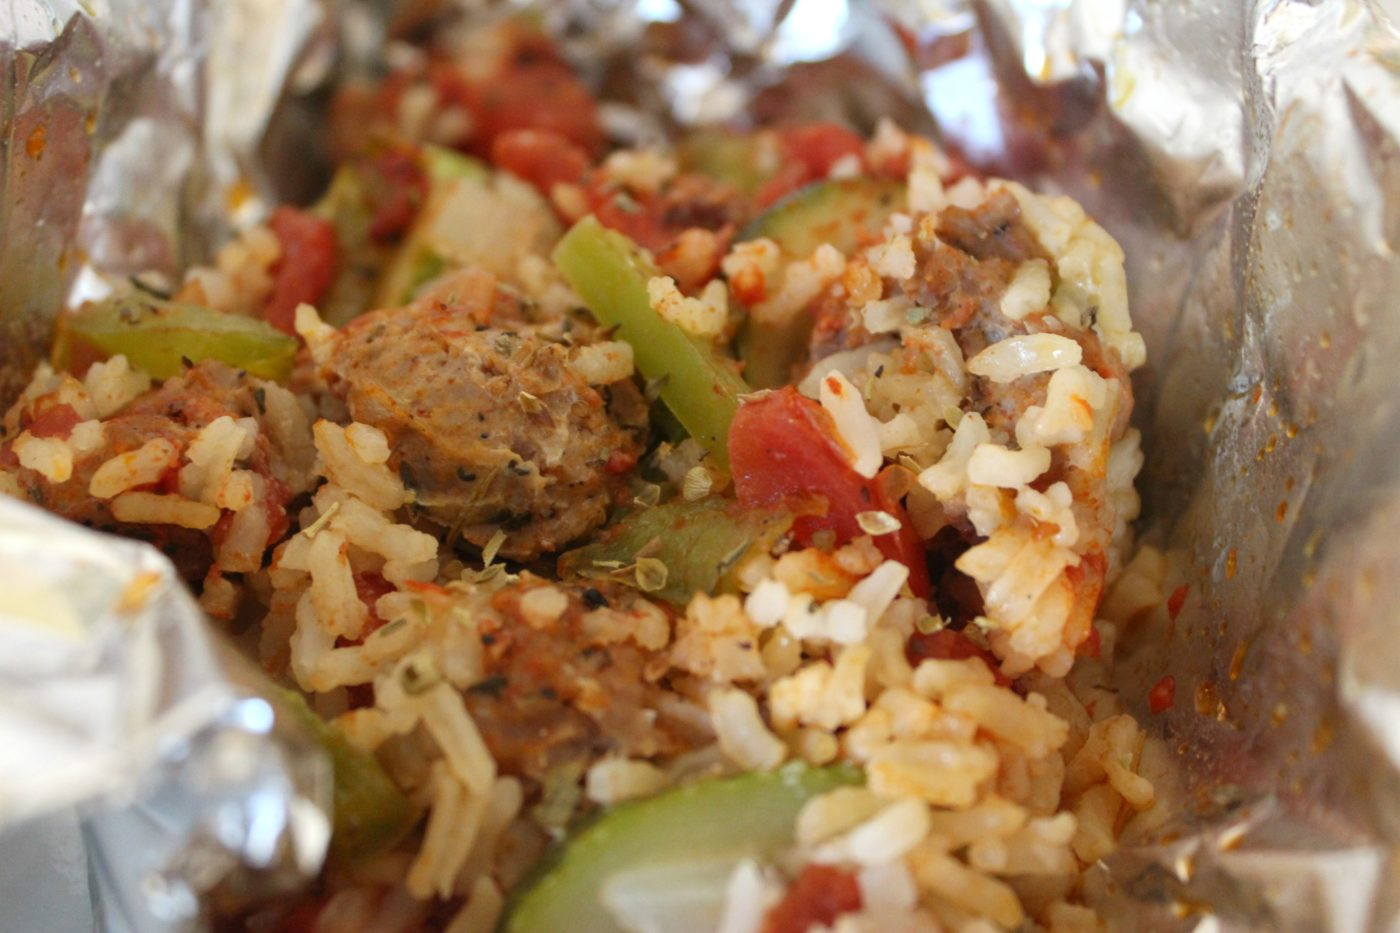 This jambalaya is full of veggies. A vegetarian option with couscous would be delicious too.